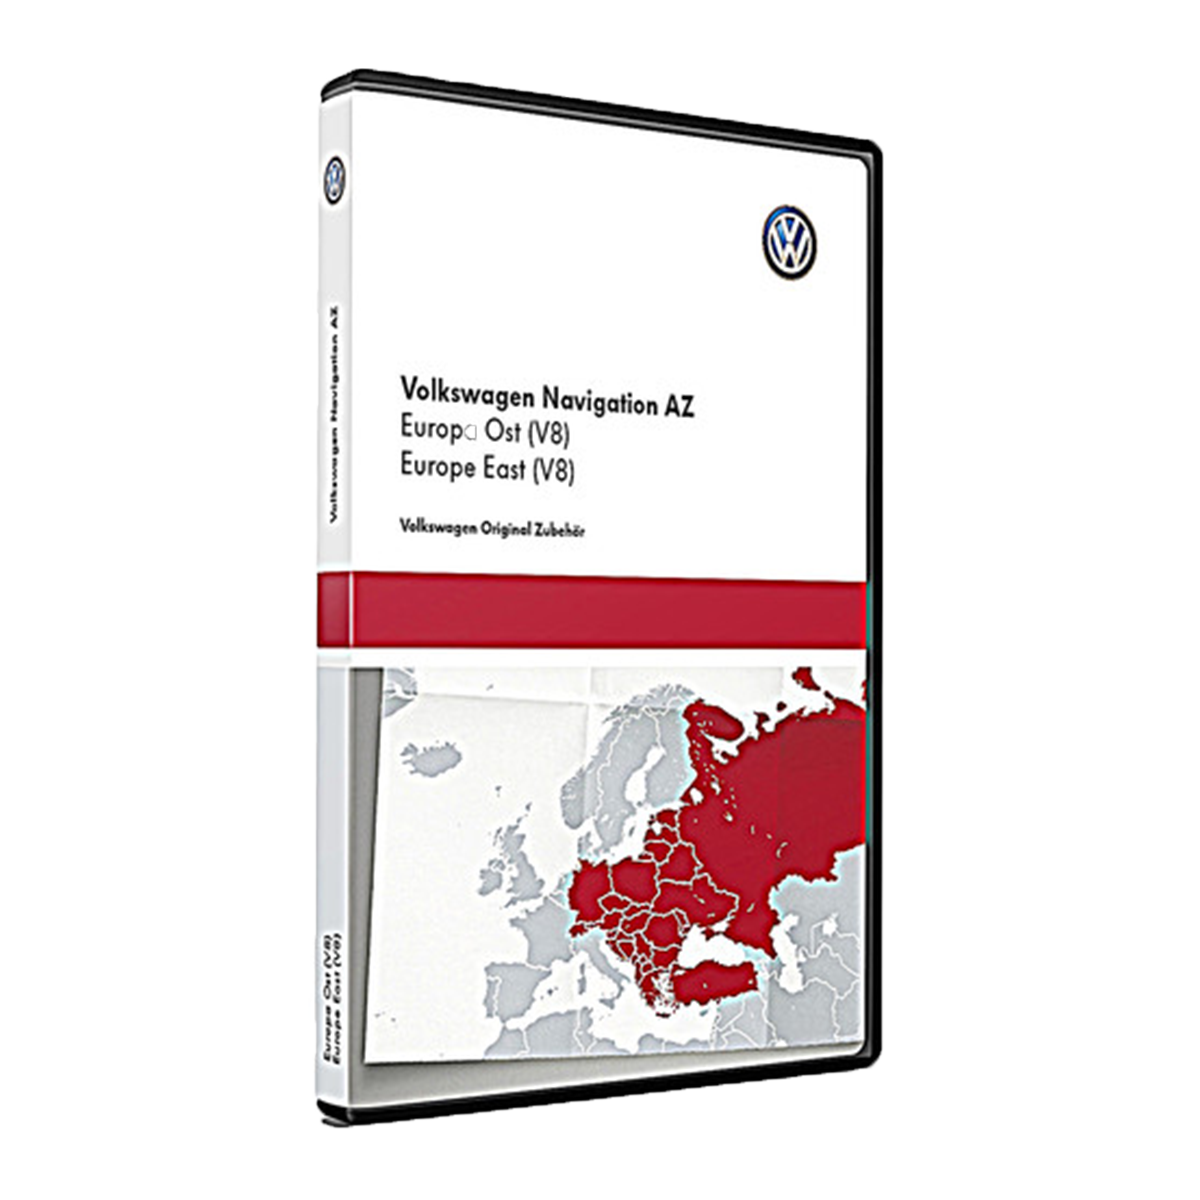 Vw rns 310 map update download | RNS  2019-09-30